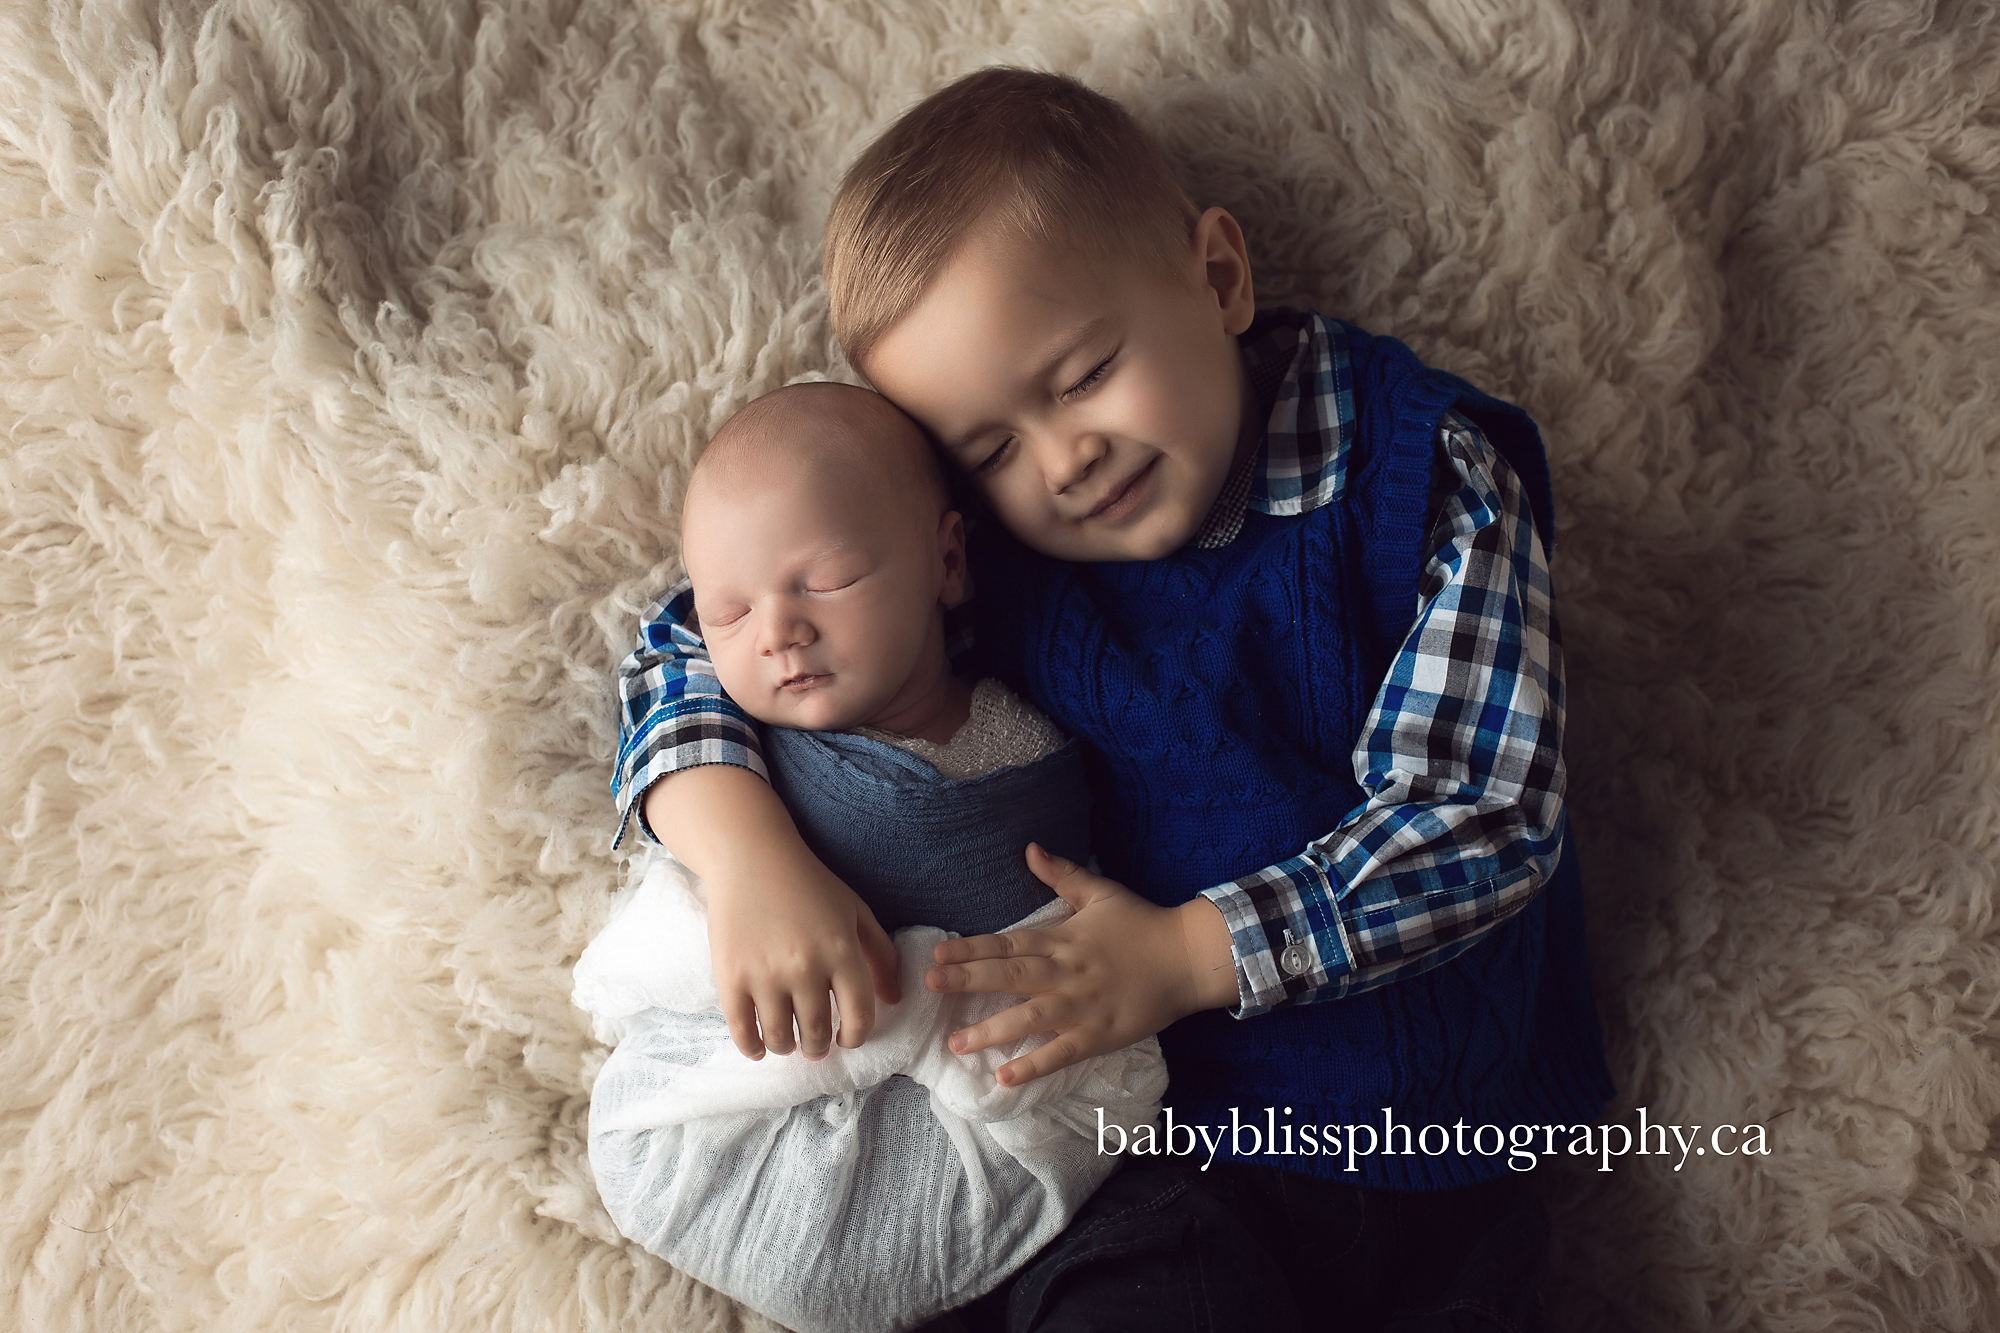 Newborn Photography in Vernon | Baby Bliss Photography | www.babyblissphotography.ca